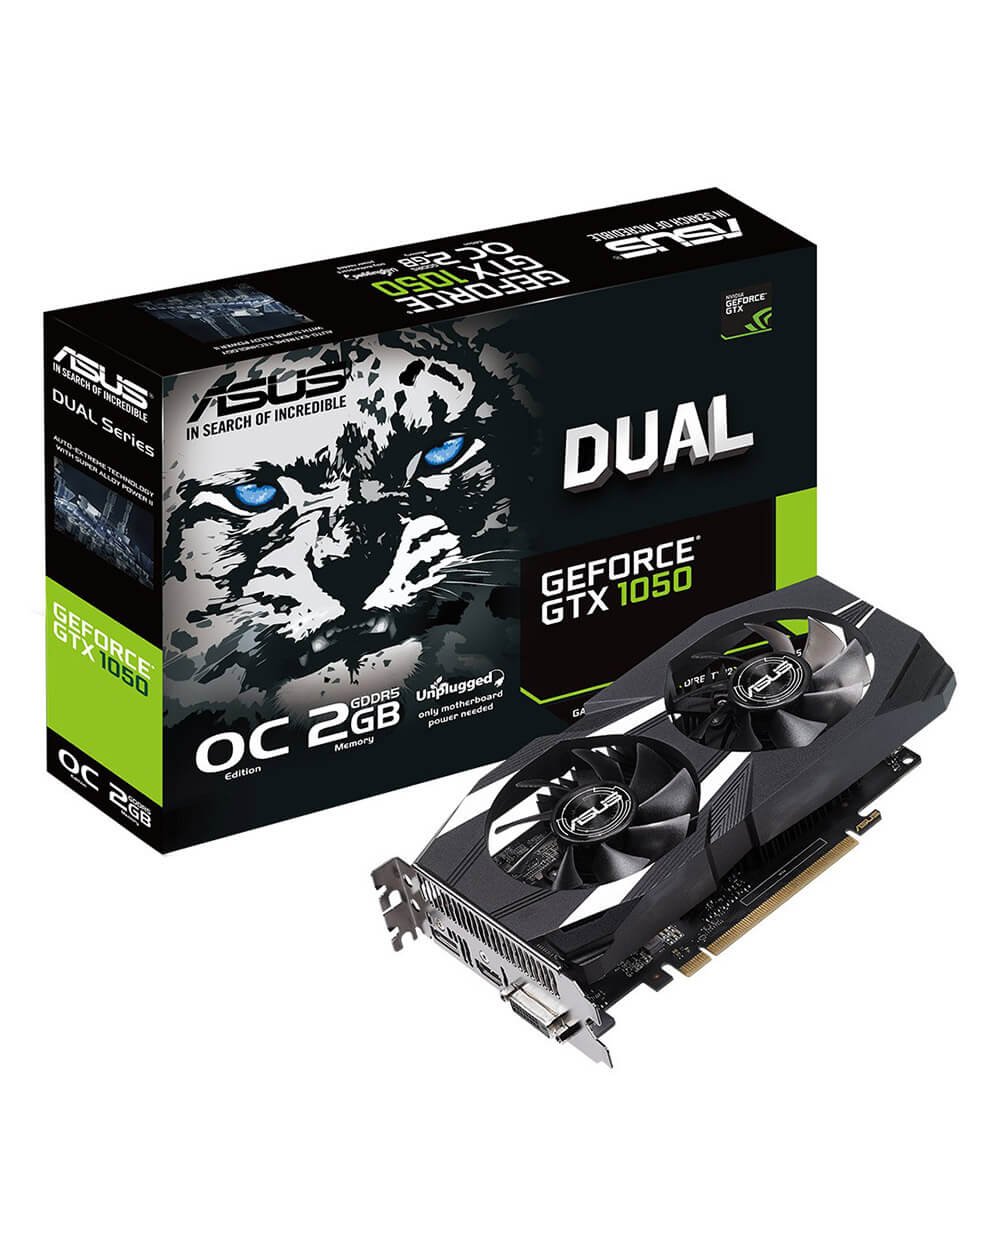 Card màn hình ASUS Dual series GeForce® GTX 1050 OC edition 2GB GDDR5